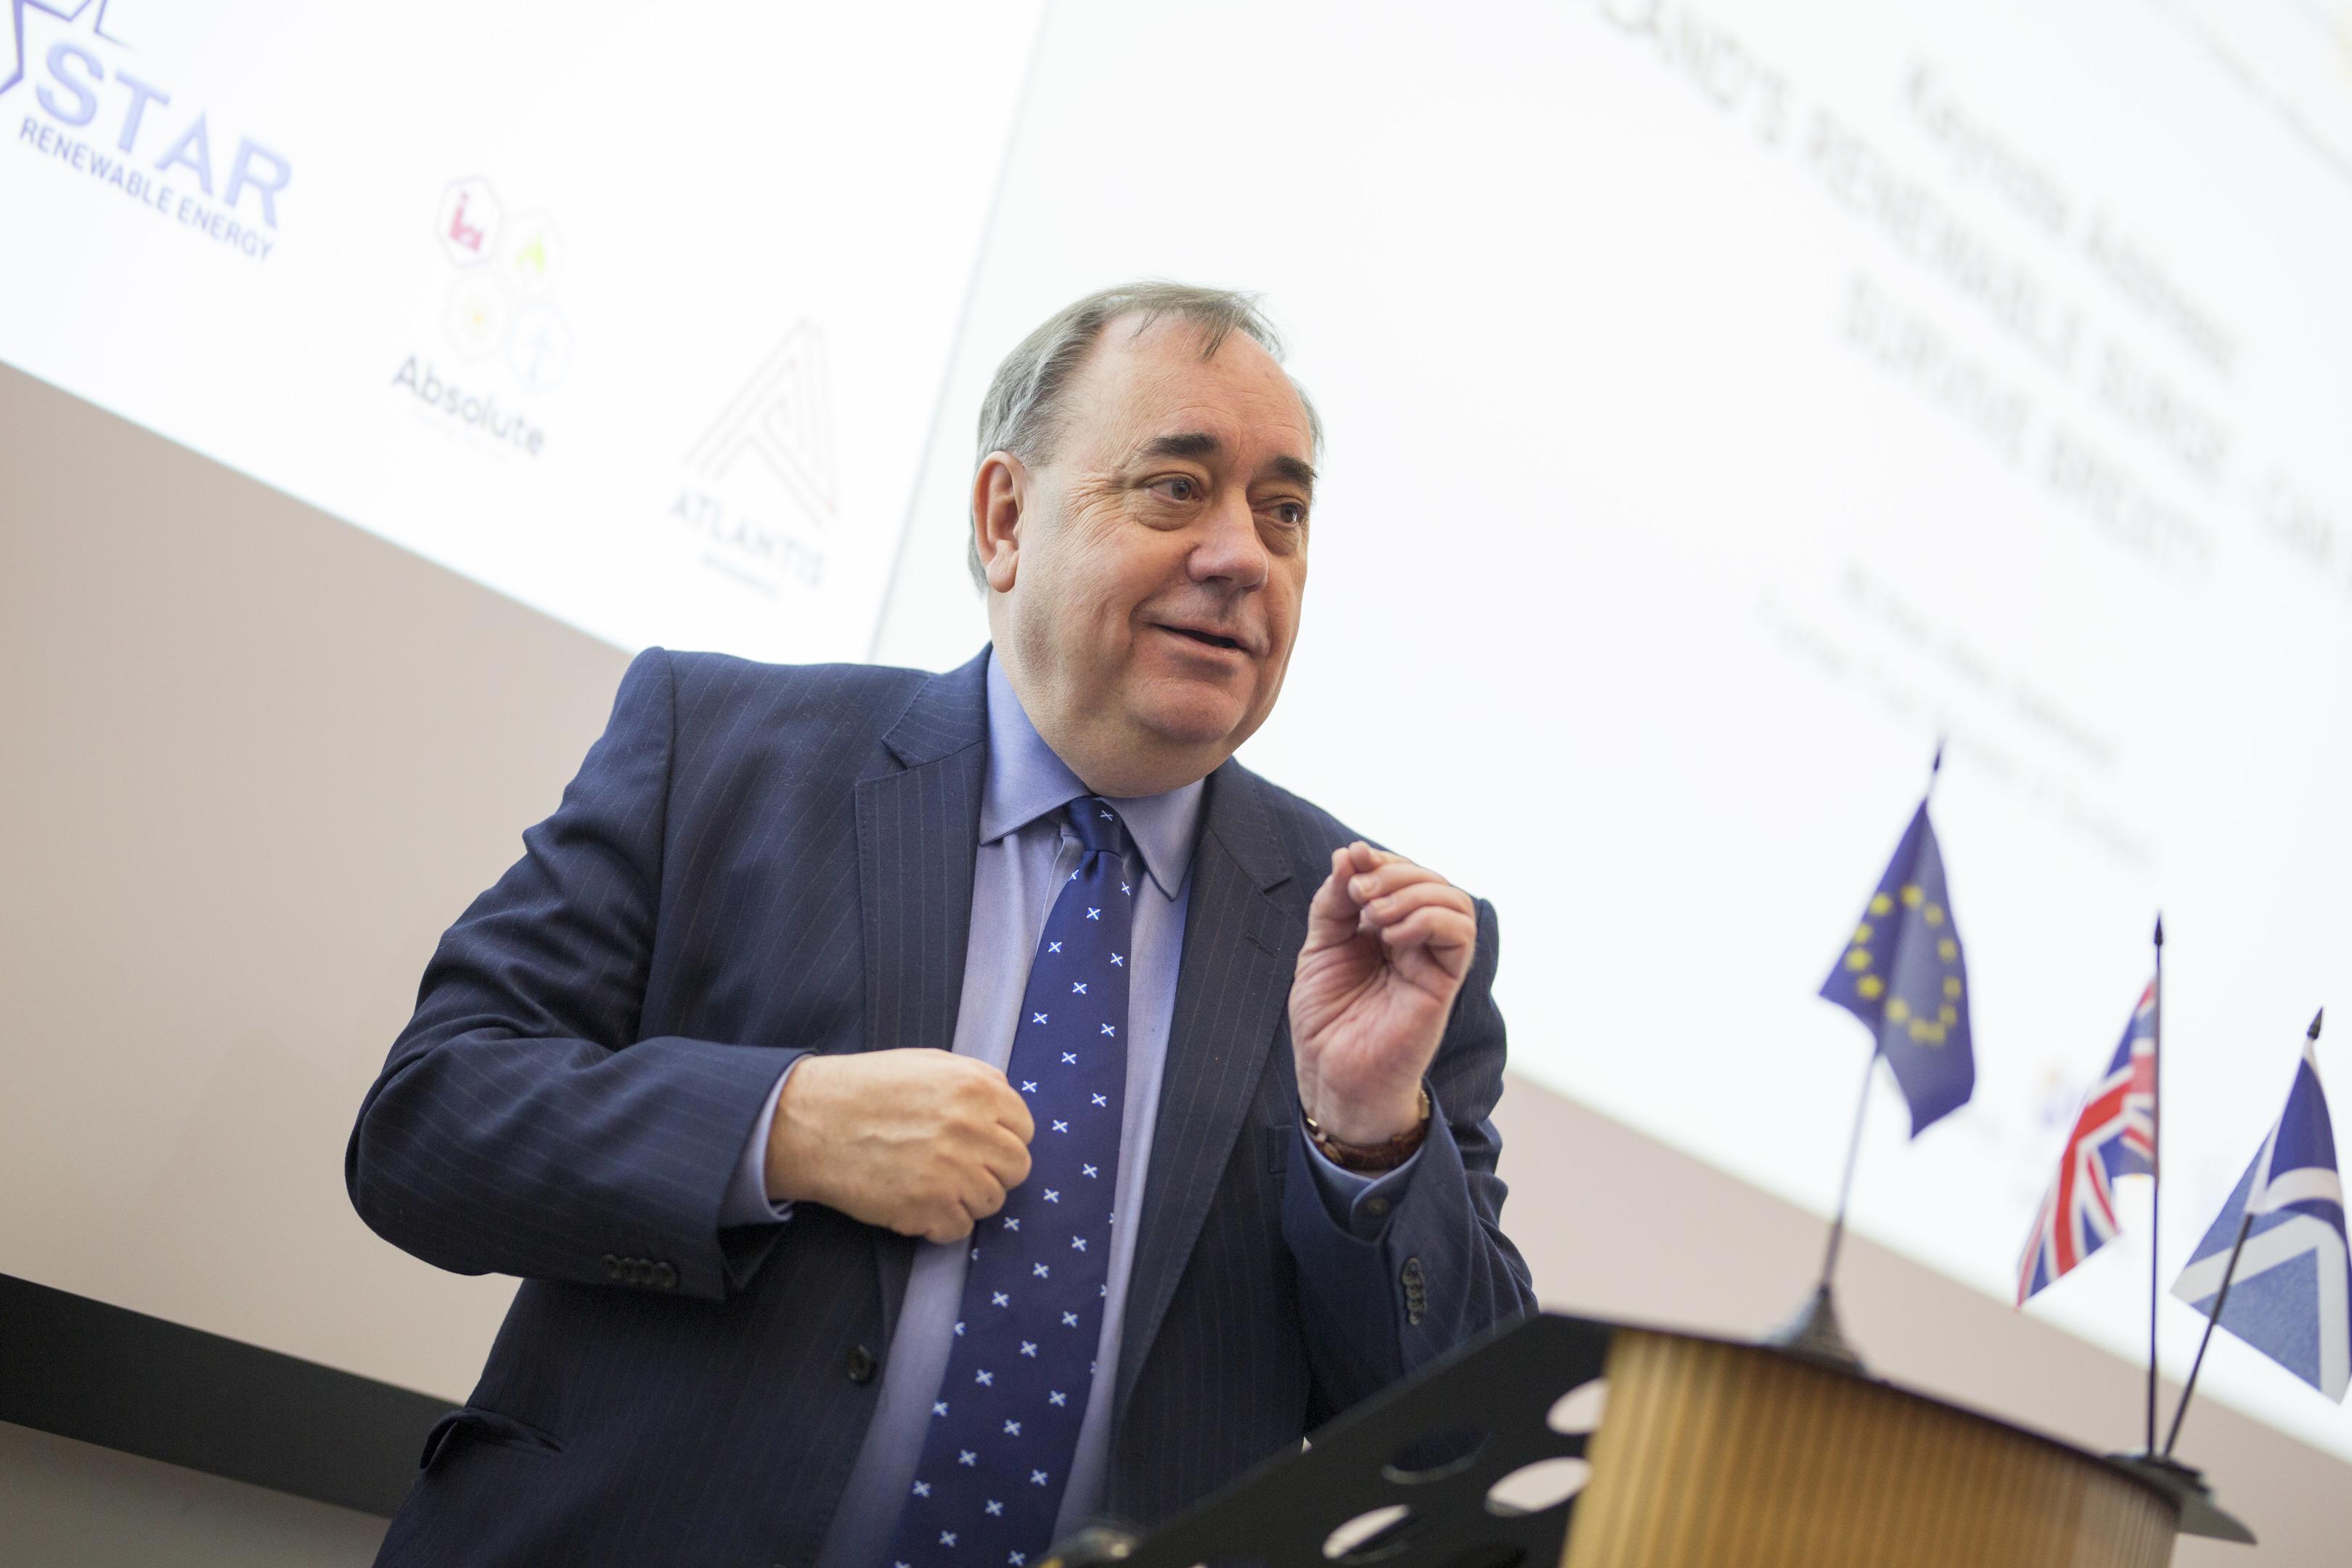 Renewables Conference: Scottish renewables projects for Scottish yards, Salmond says